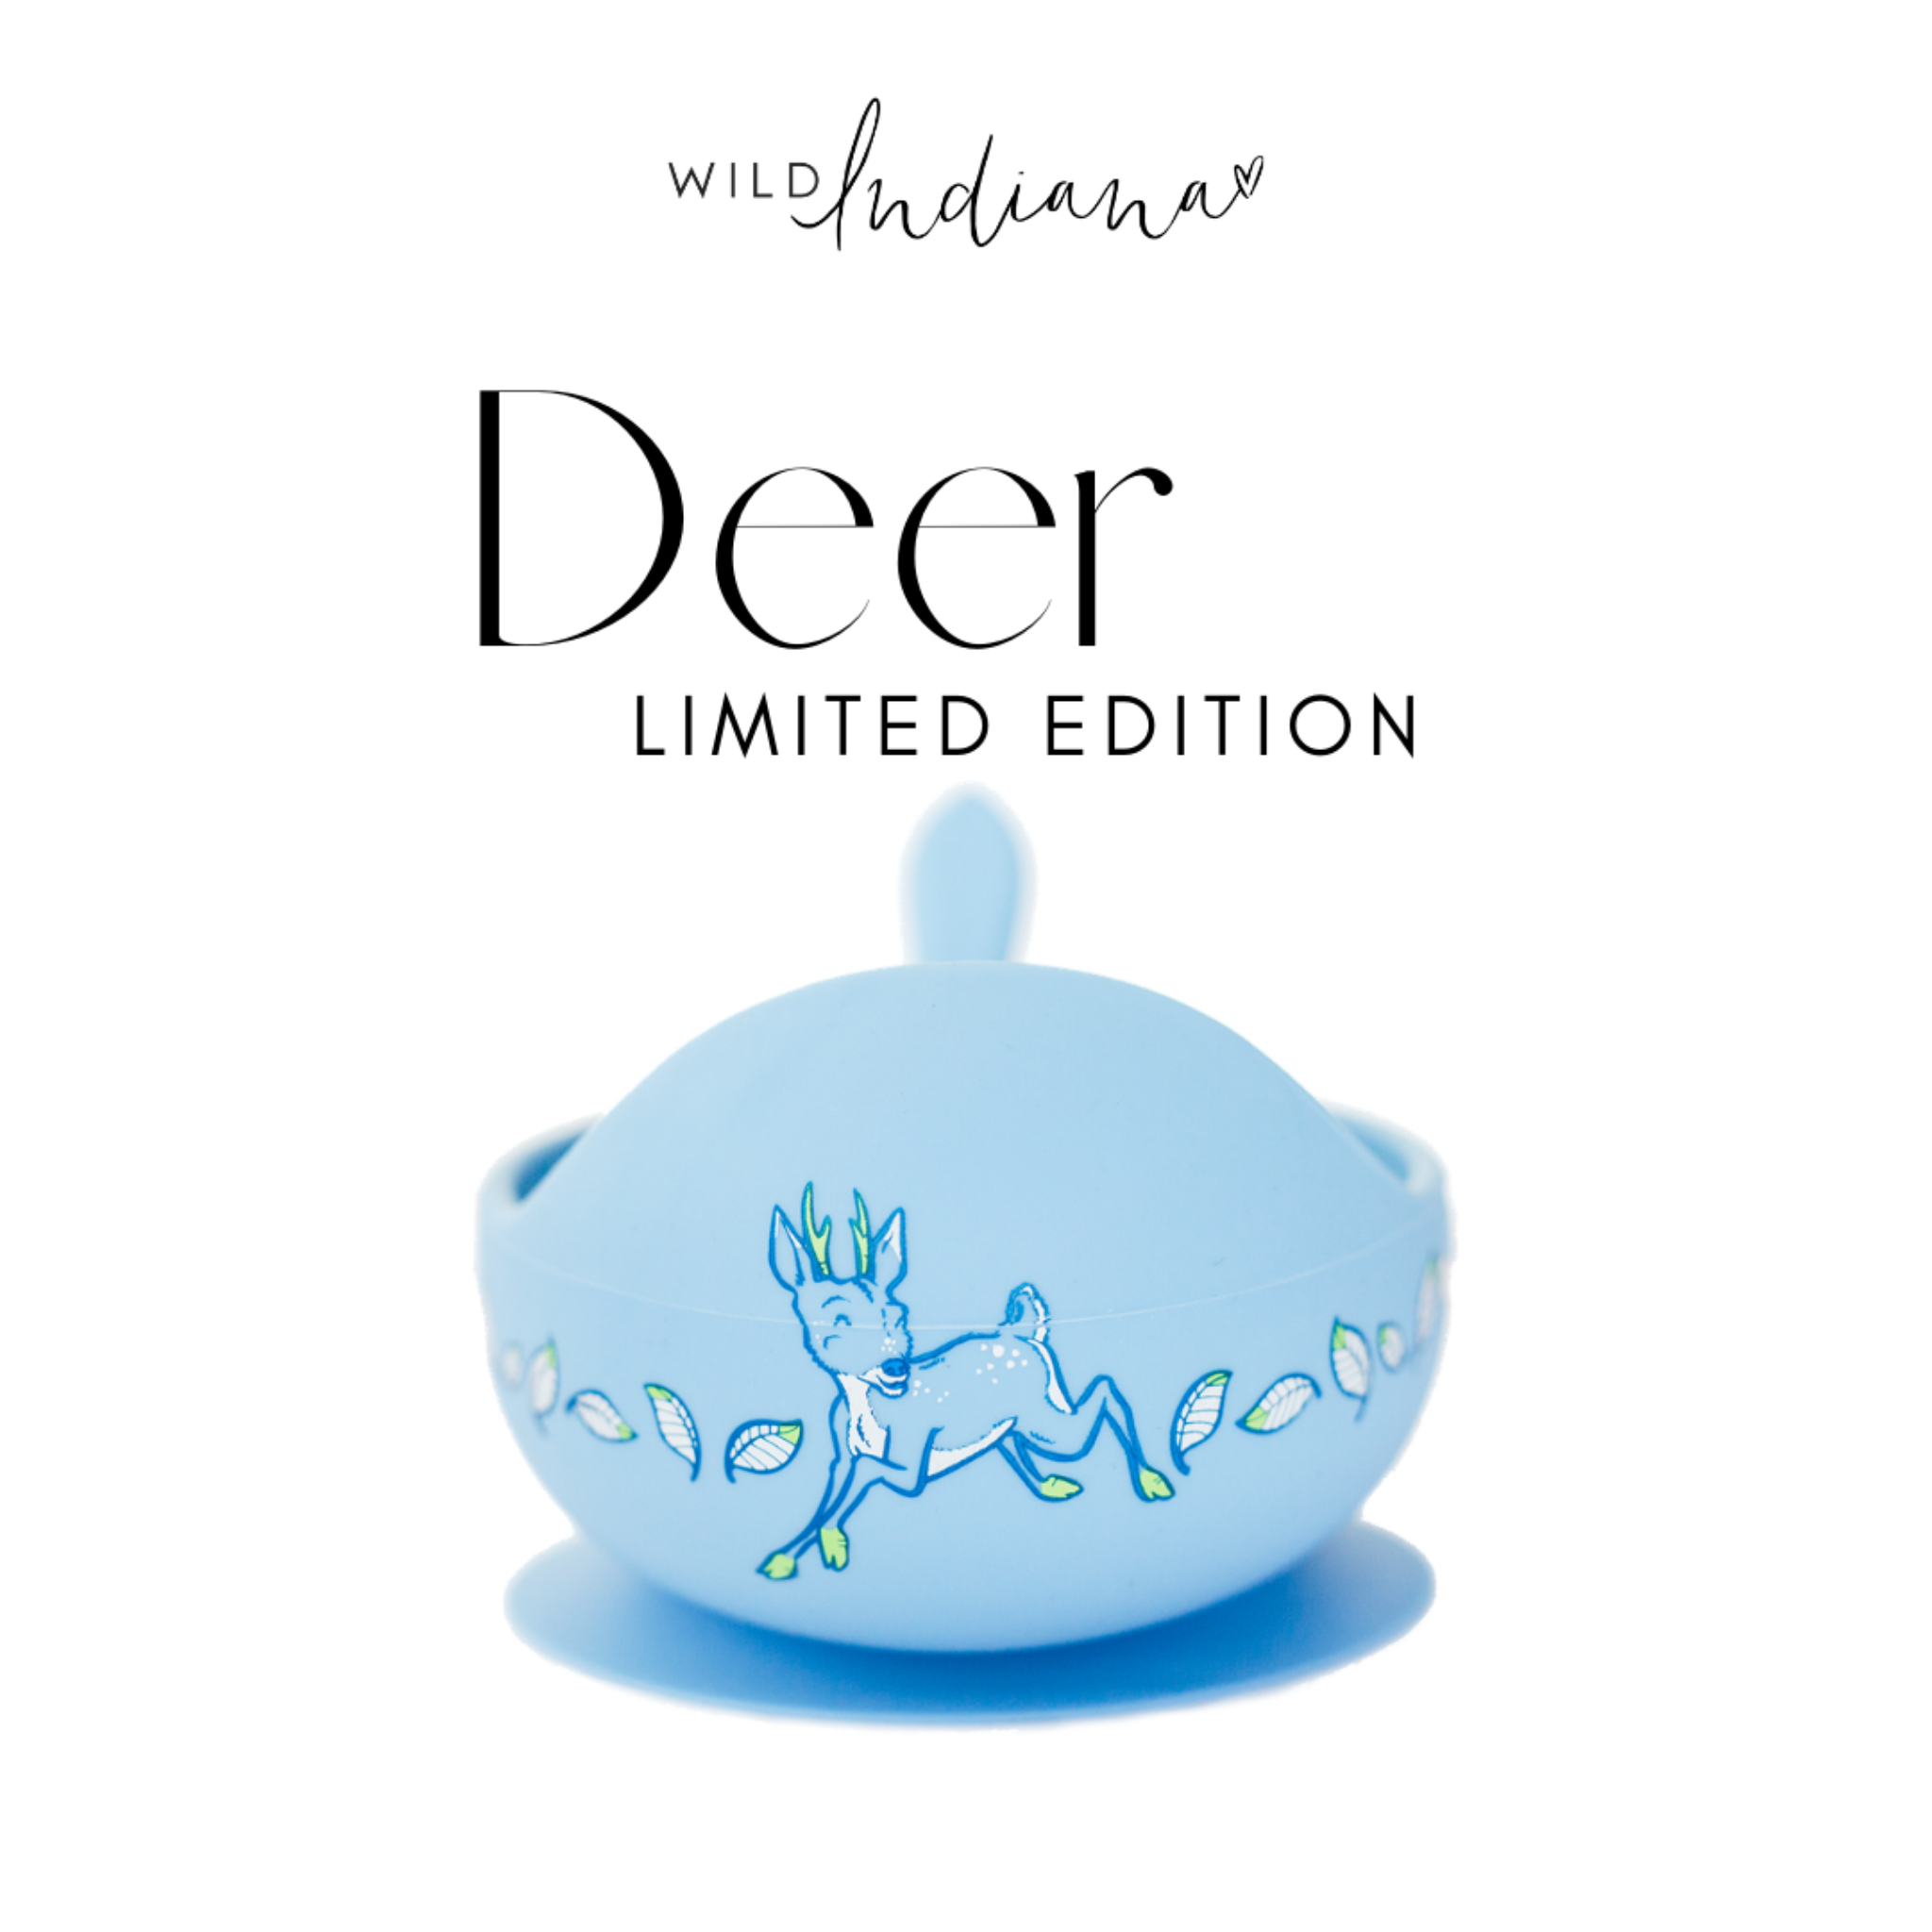 WILD INDIANA - LIMITED EDITION Silicone Bowl Set | DEER